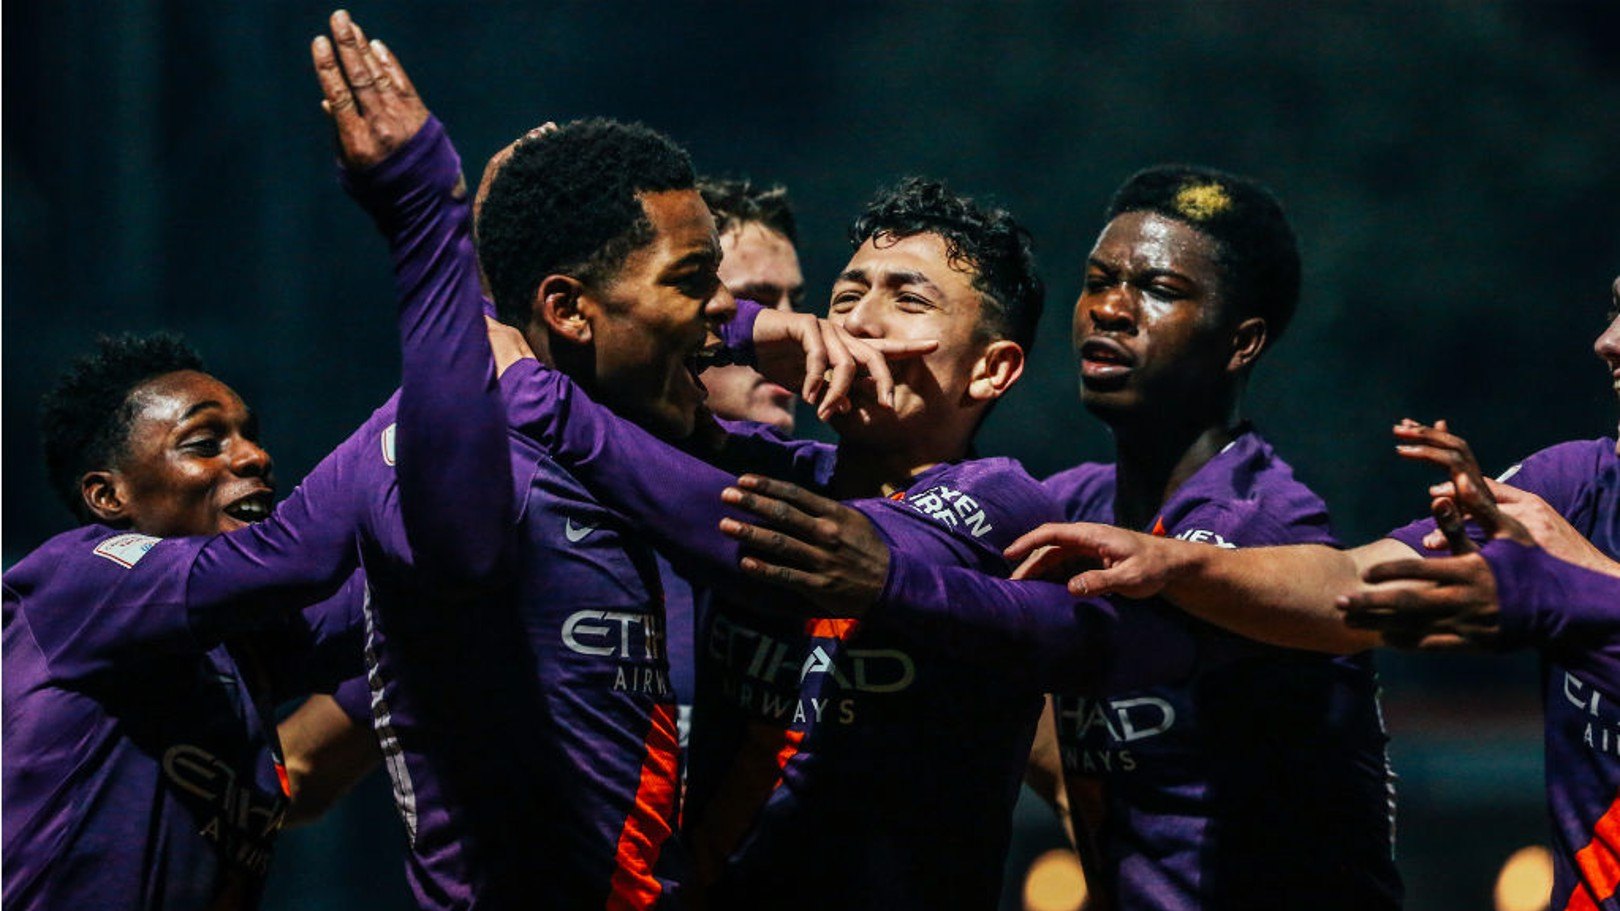 ALL SMILES: City's Under-21 players celebrate after Jayden Braaf's second goal during our 4-2 Checkatrade Trophy win at Rochdale